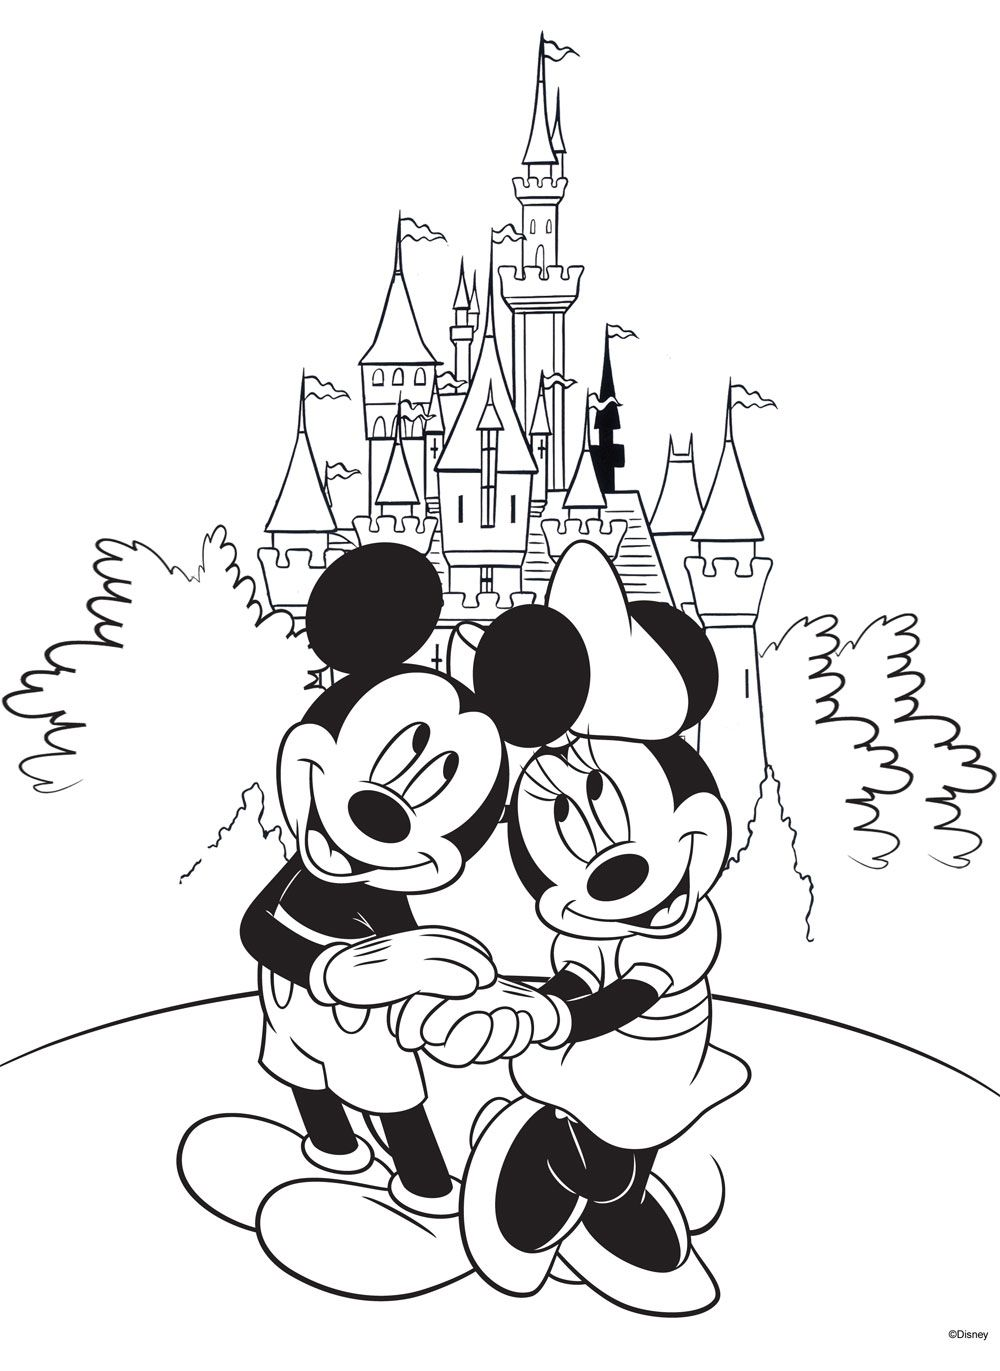 Free Disney Coloring Page! #Printable  Disney coloring pages